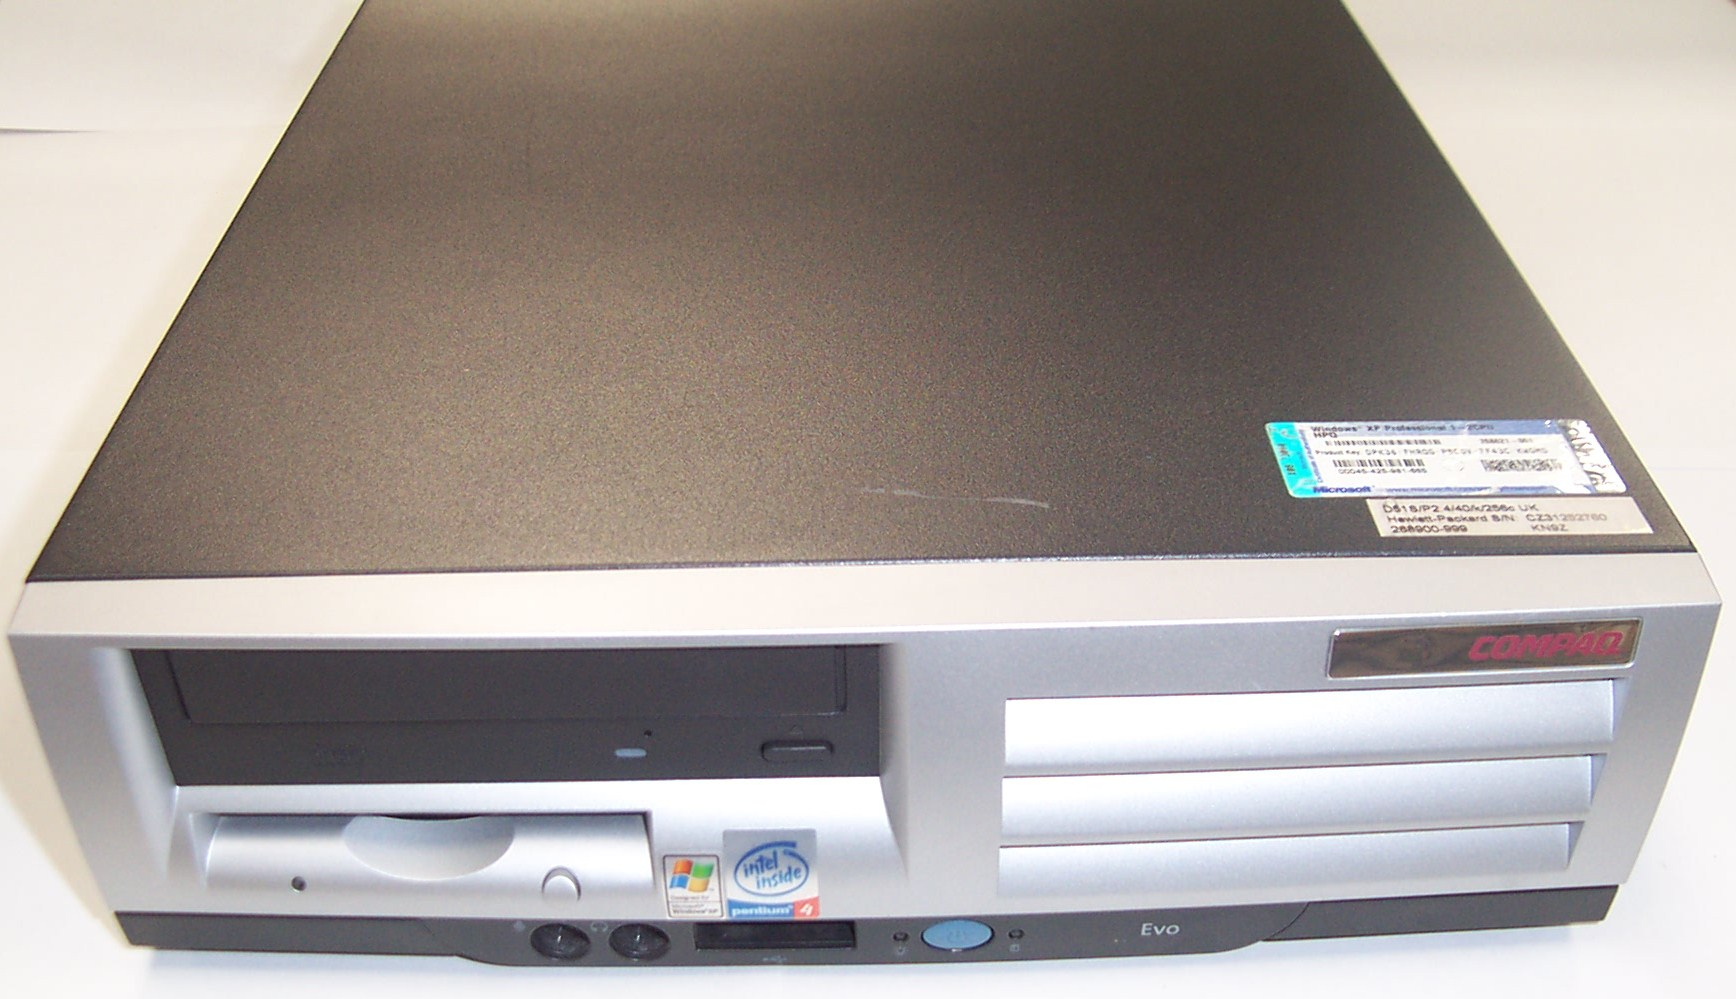 COMPAQ EVO D510 ETHERNET DRIVERS FOR MAC DOWNLOAD